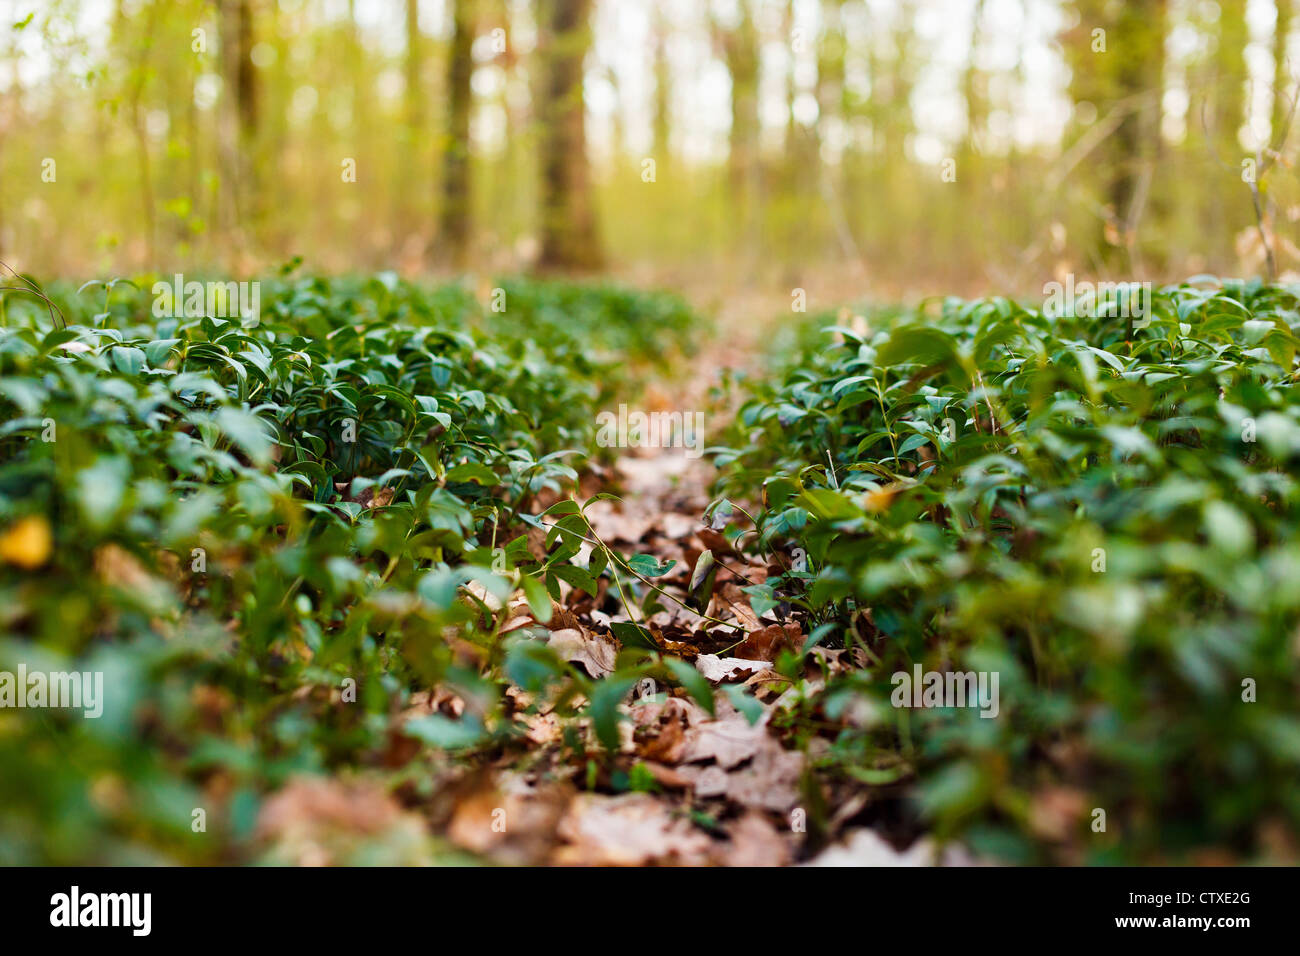 Trail in the forest - Stock Image